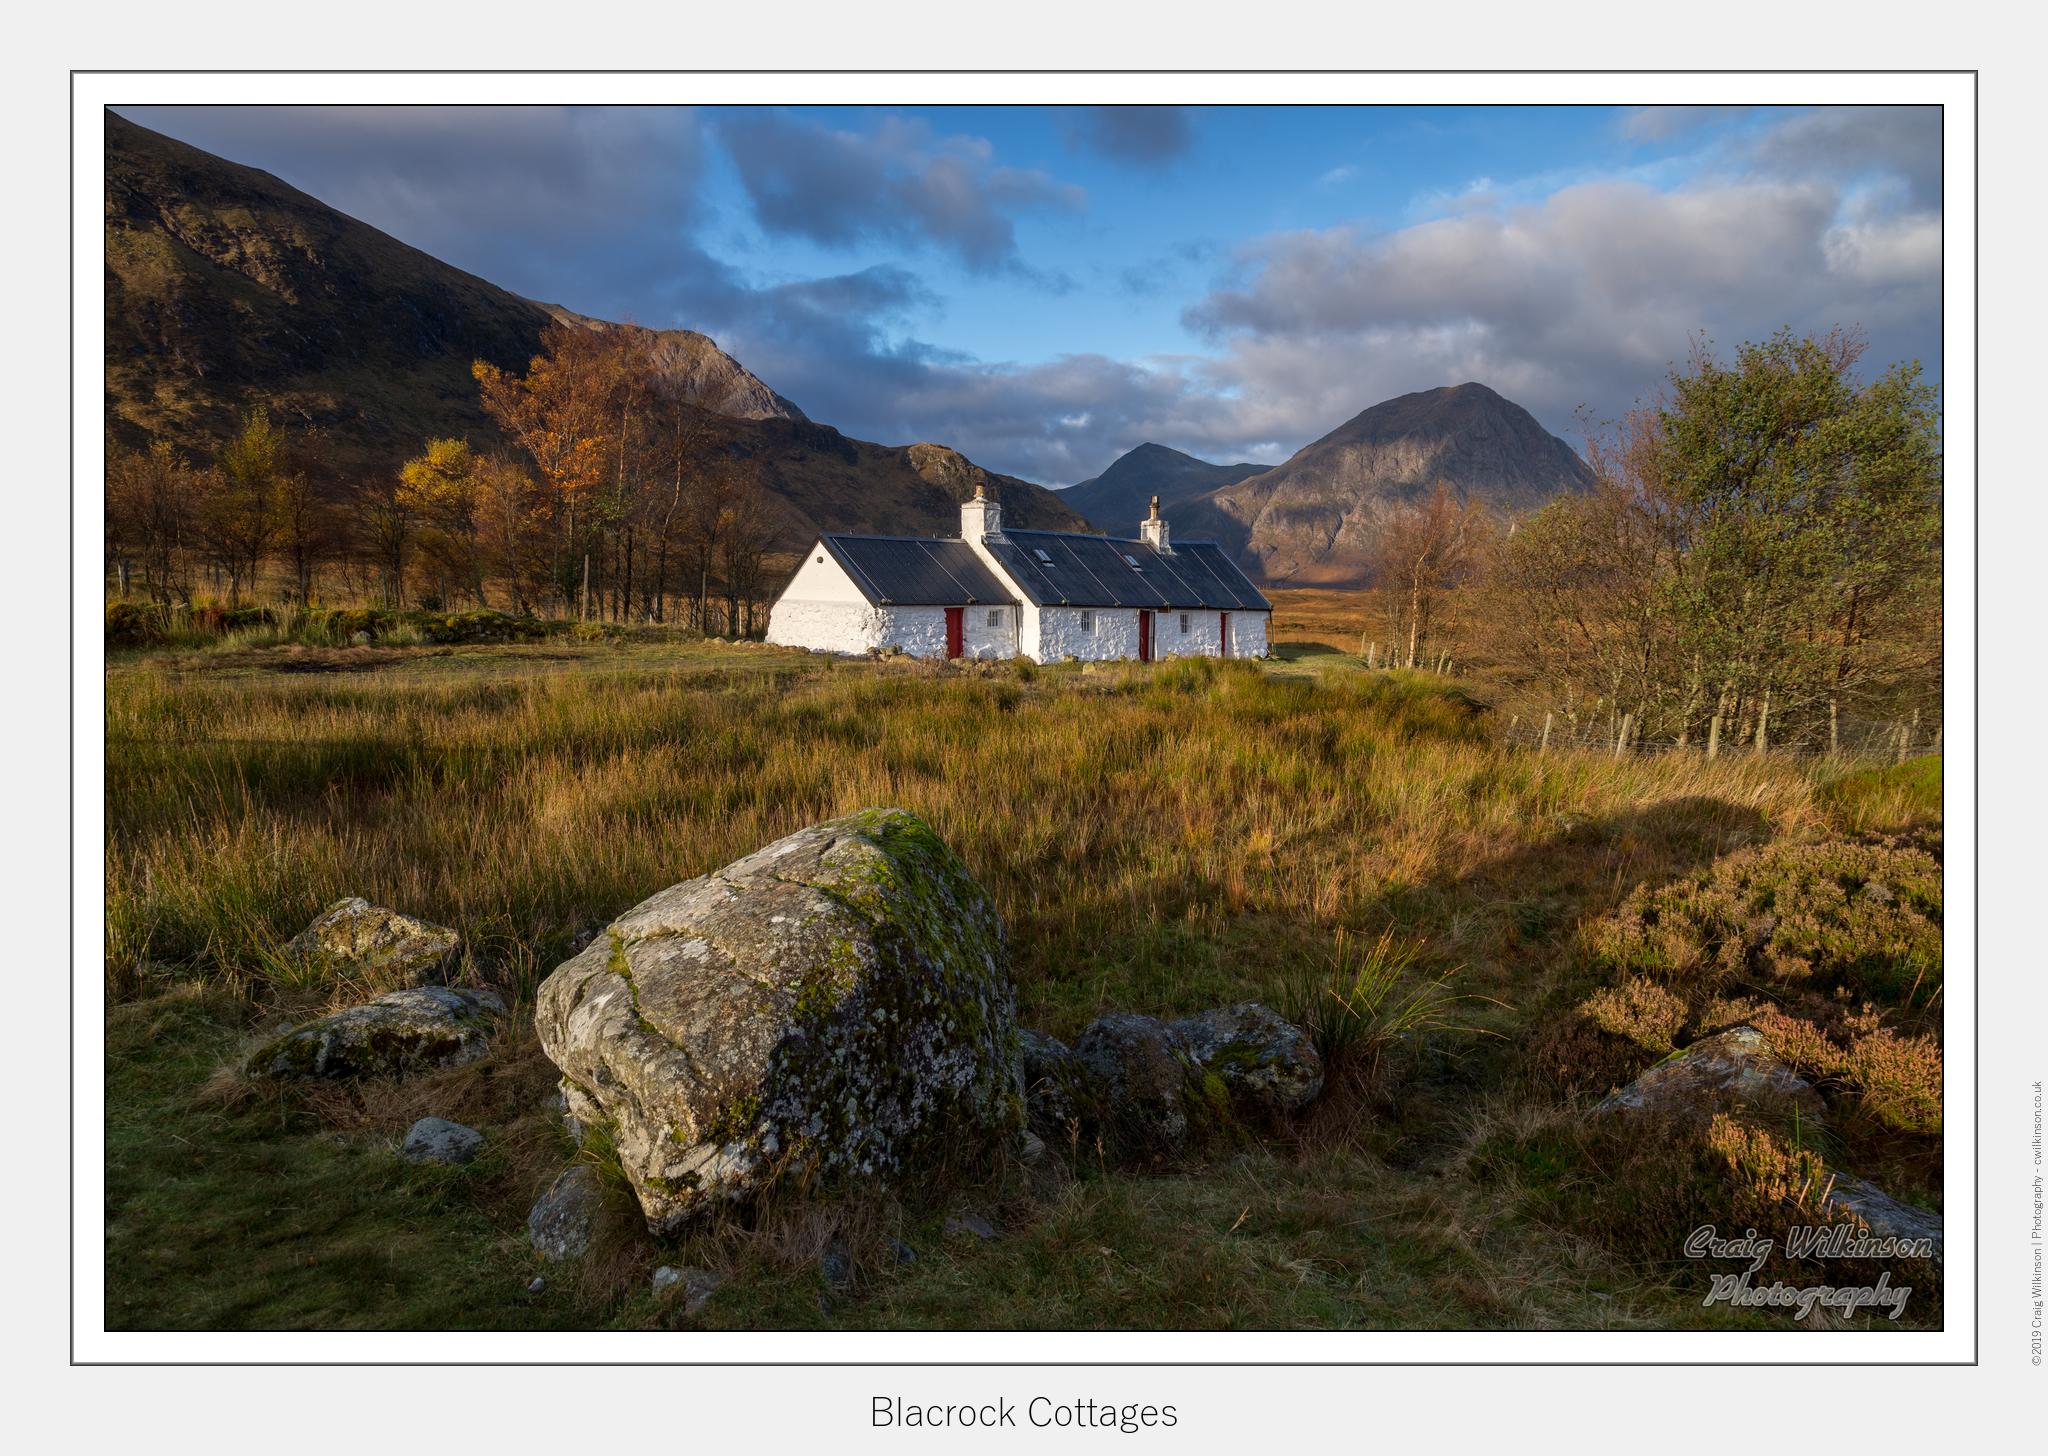 01-Blacrock Cottages - (5760 x 3840).jpg